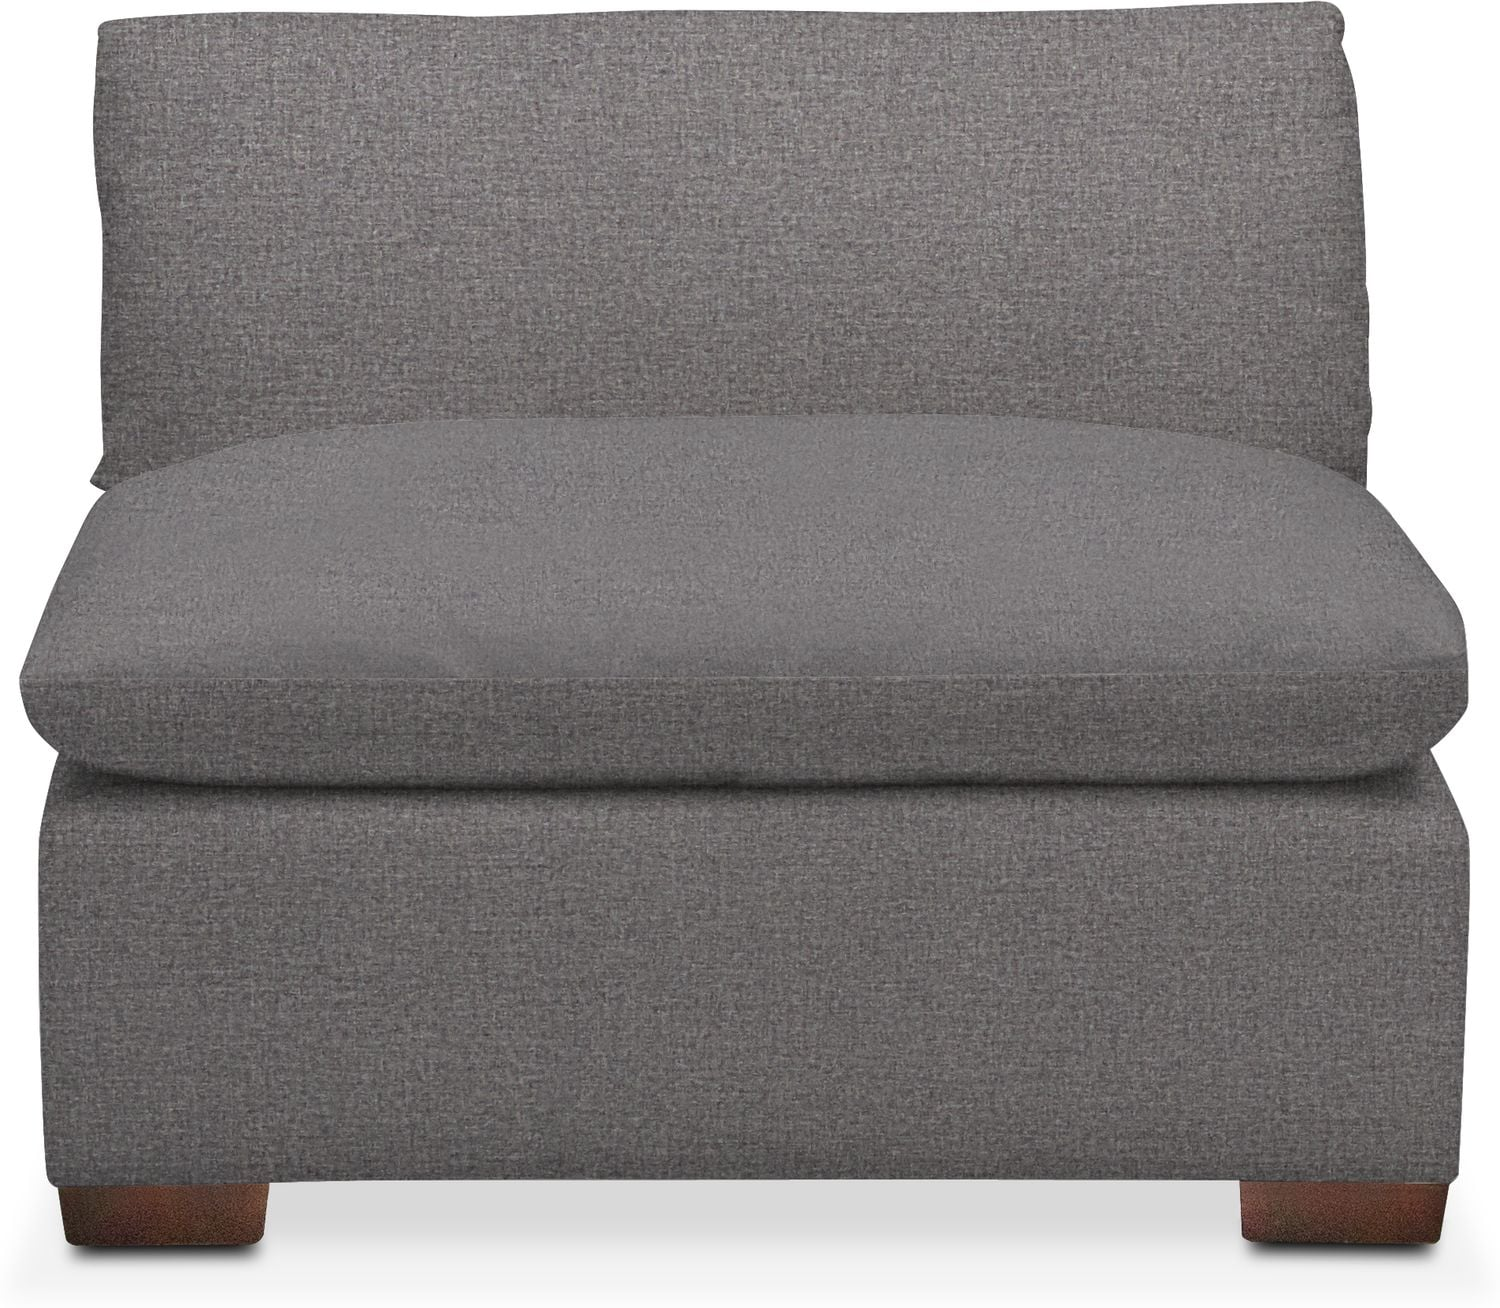 Living Room Furniture - Plush Performance Armless Chair